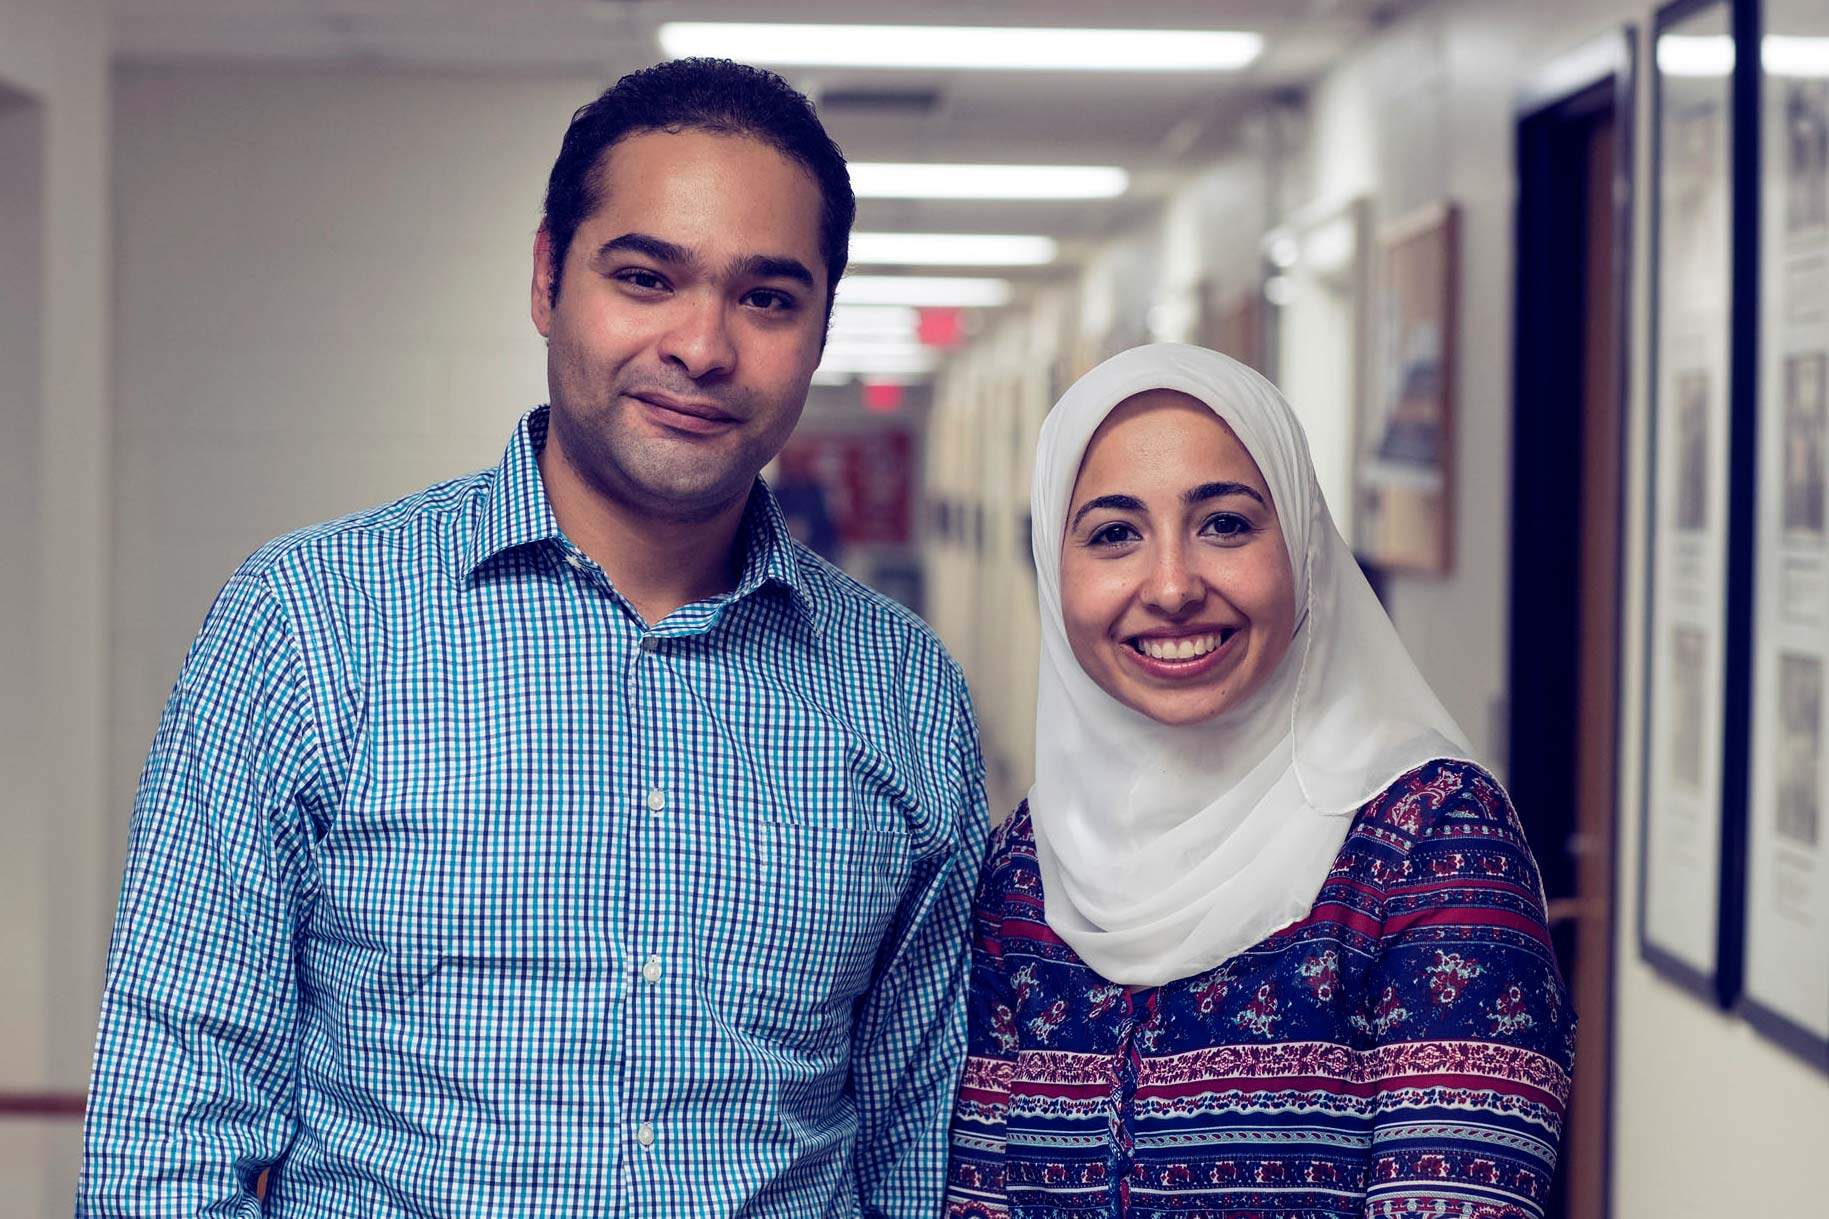 Mohamed Morsy and Bakinam Tarik Essawy are pioneering in hydroinformatics, a merging of hydrology and computer science in which vast fields of data are analyzed to create workable models.